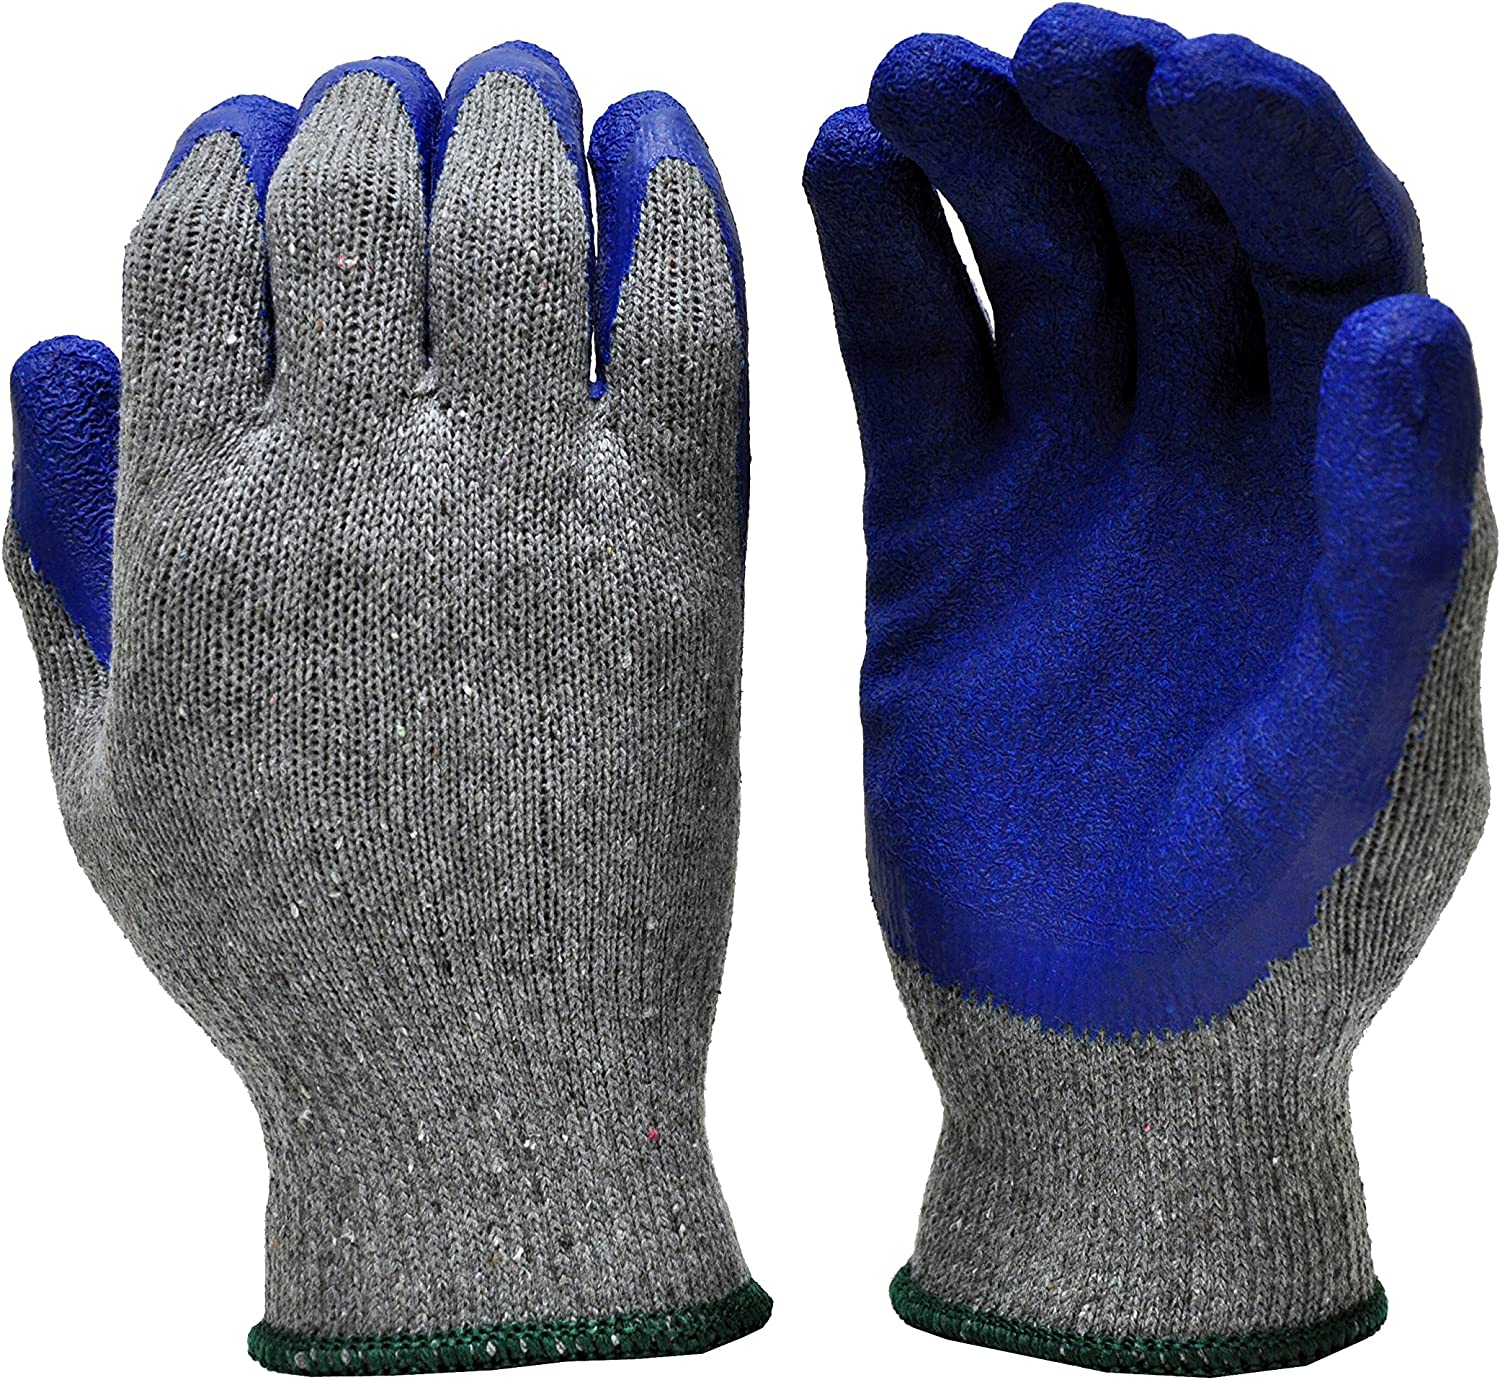 G F 1511M-DZ Rubber Latex Dedication Construction Work Max 67% OFF Gloves Coated for